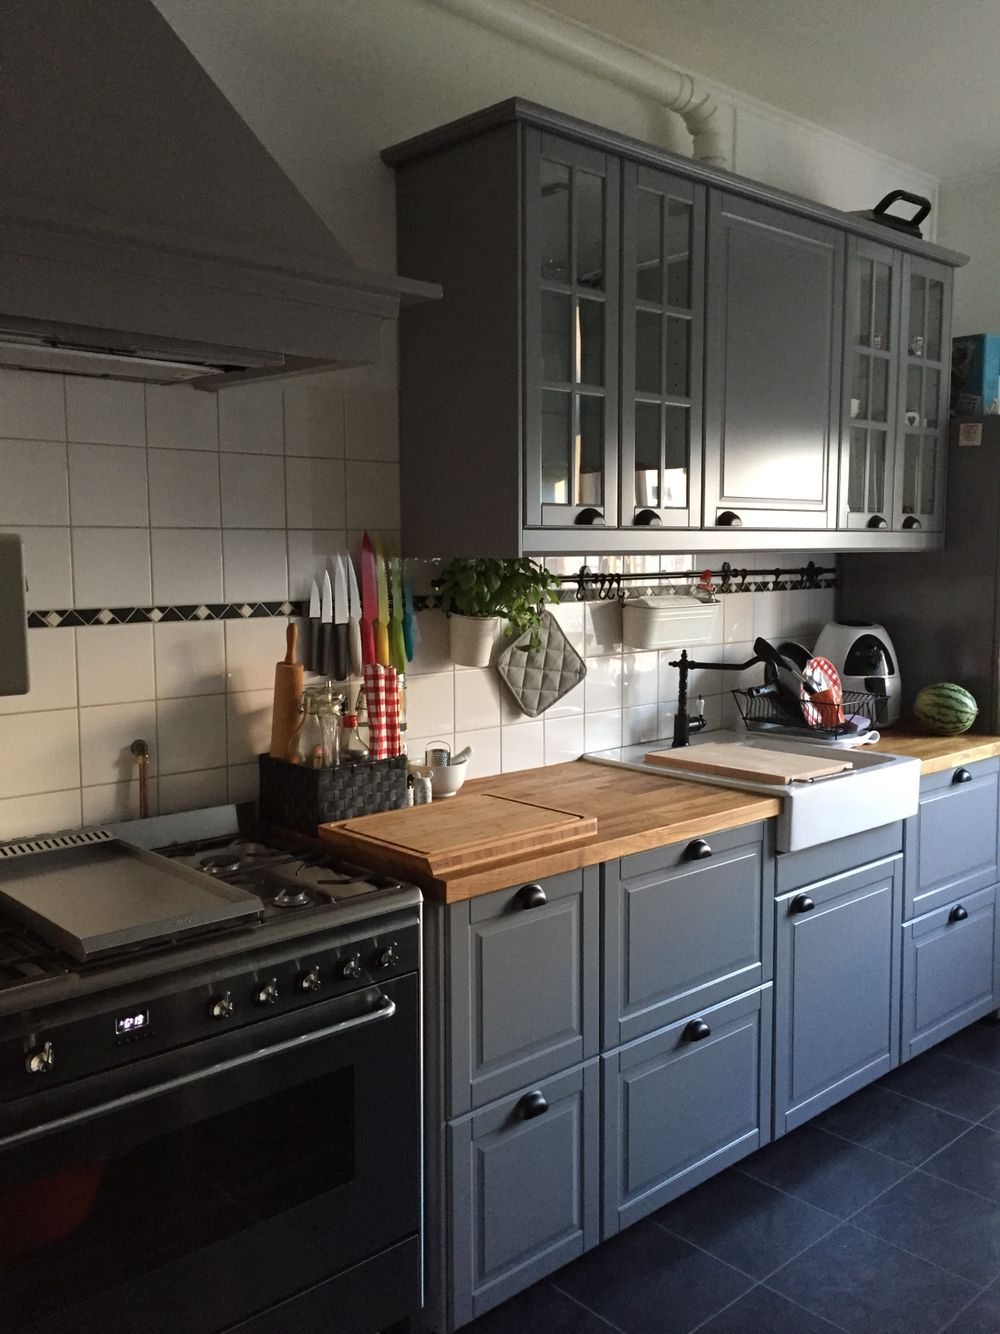 Our new ikea kitchen bodbyn brey with the smeg oven  Cuisine gris